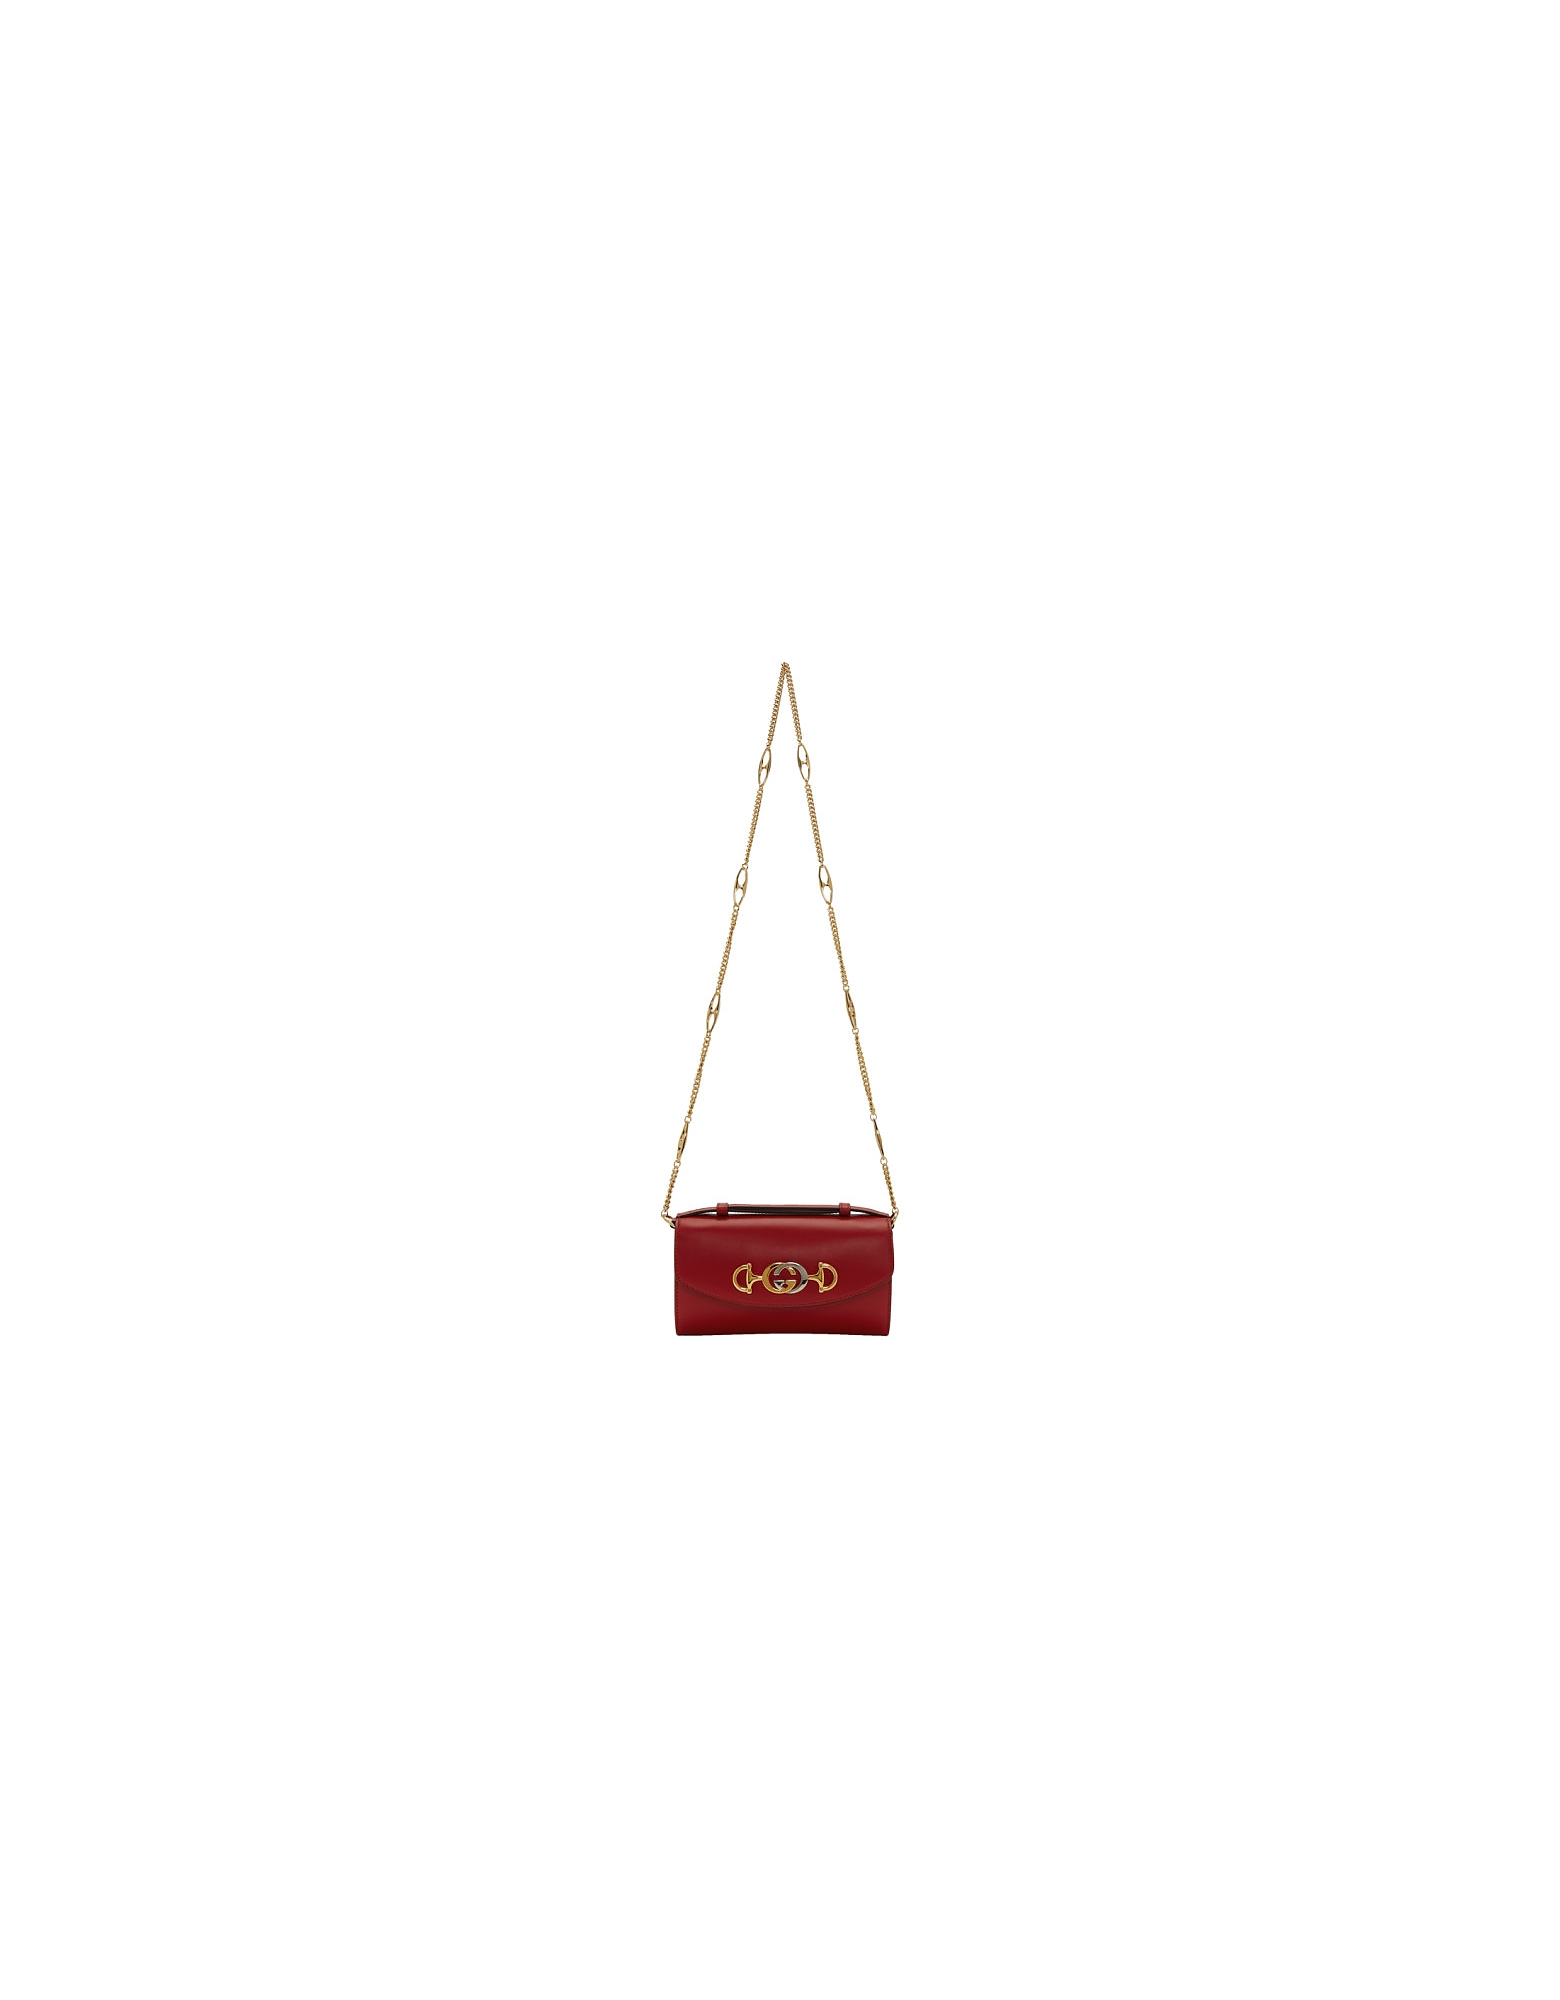 Gucci Designer Handbags, Red Mini Zumi Bag